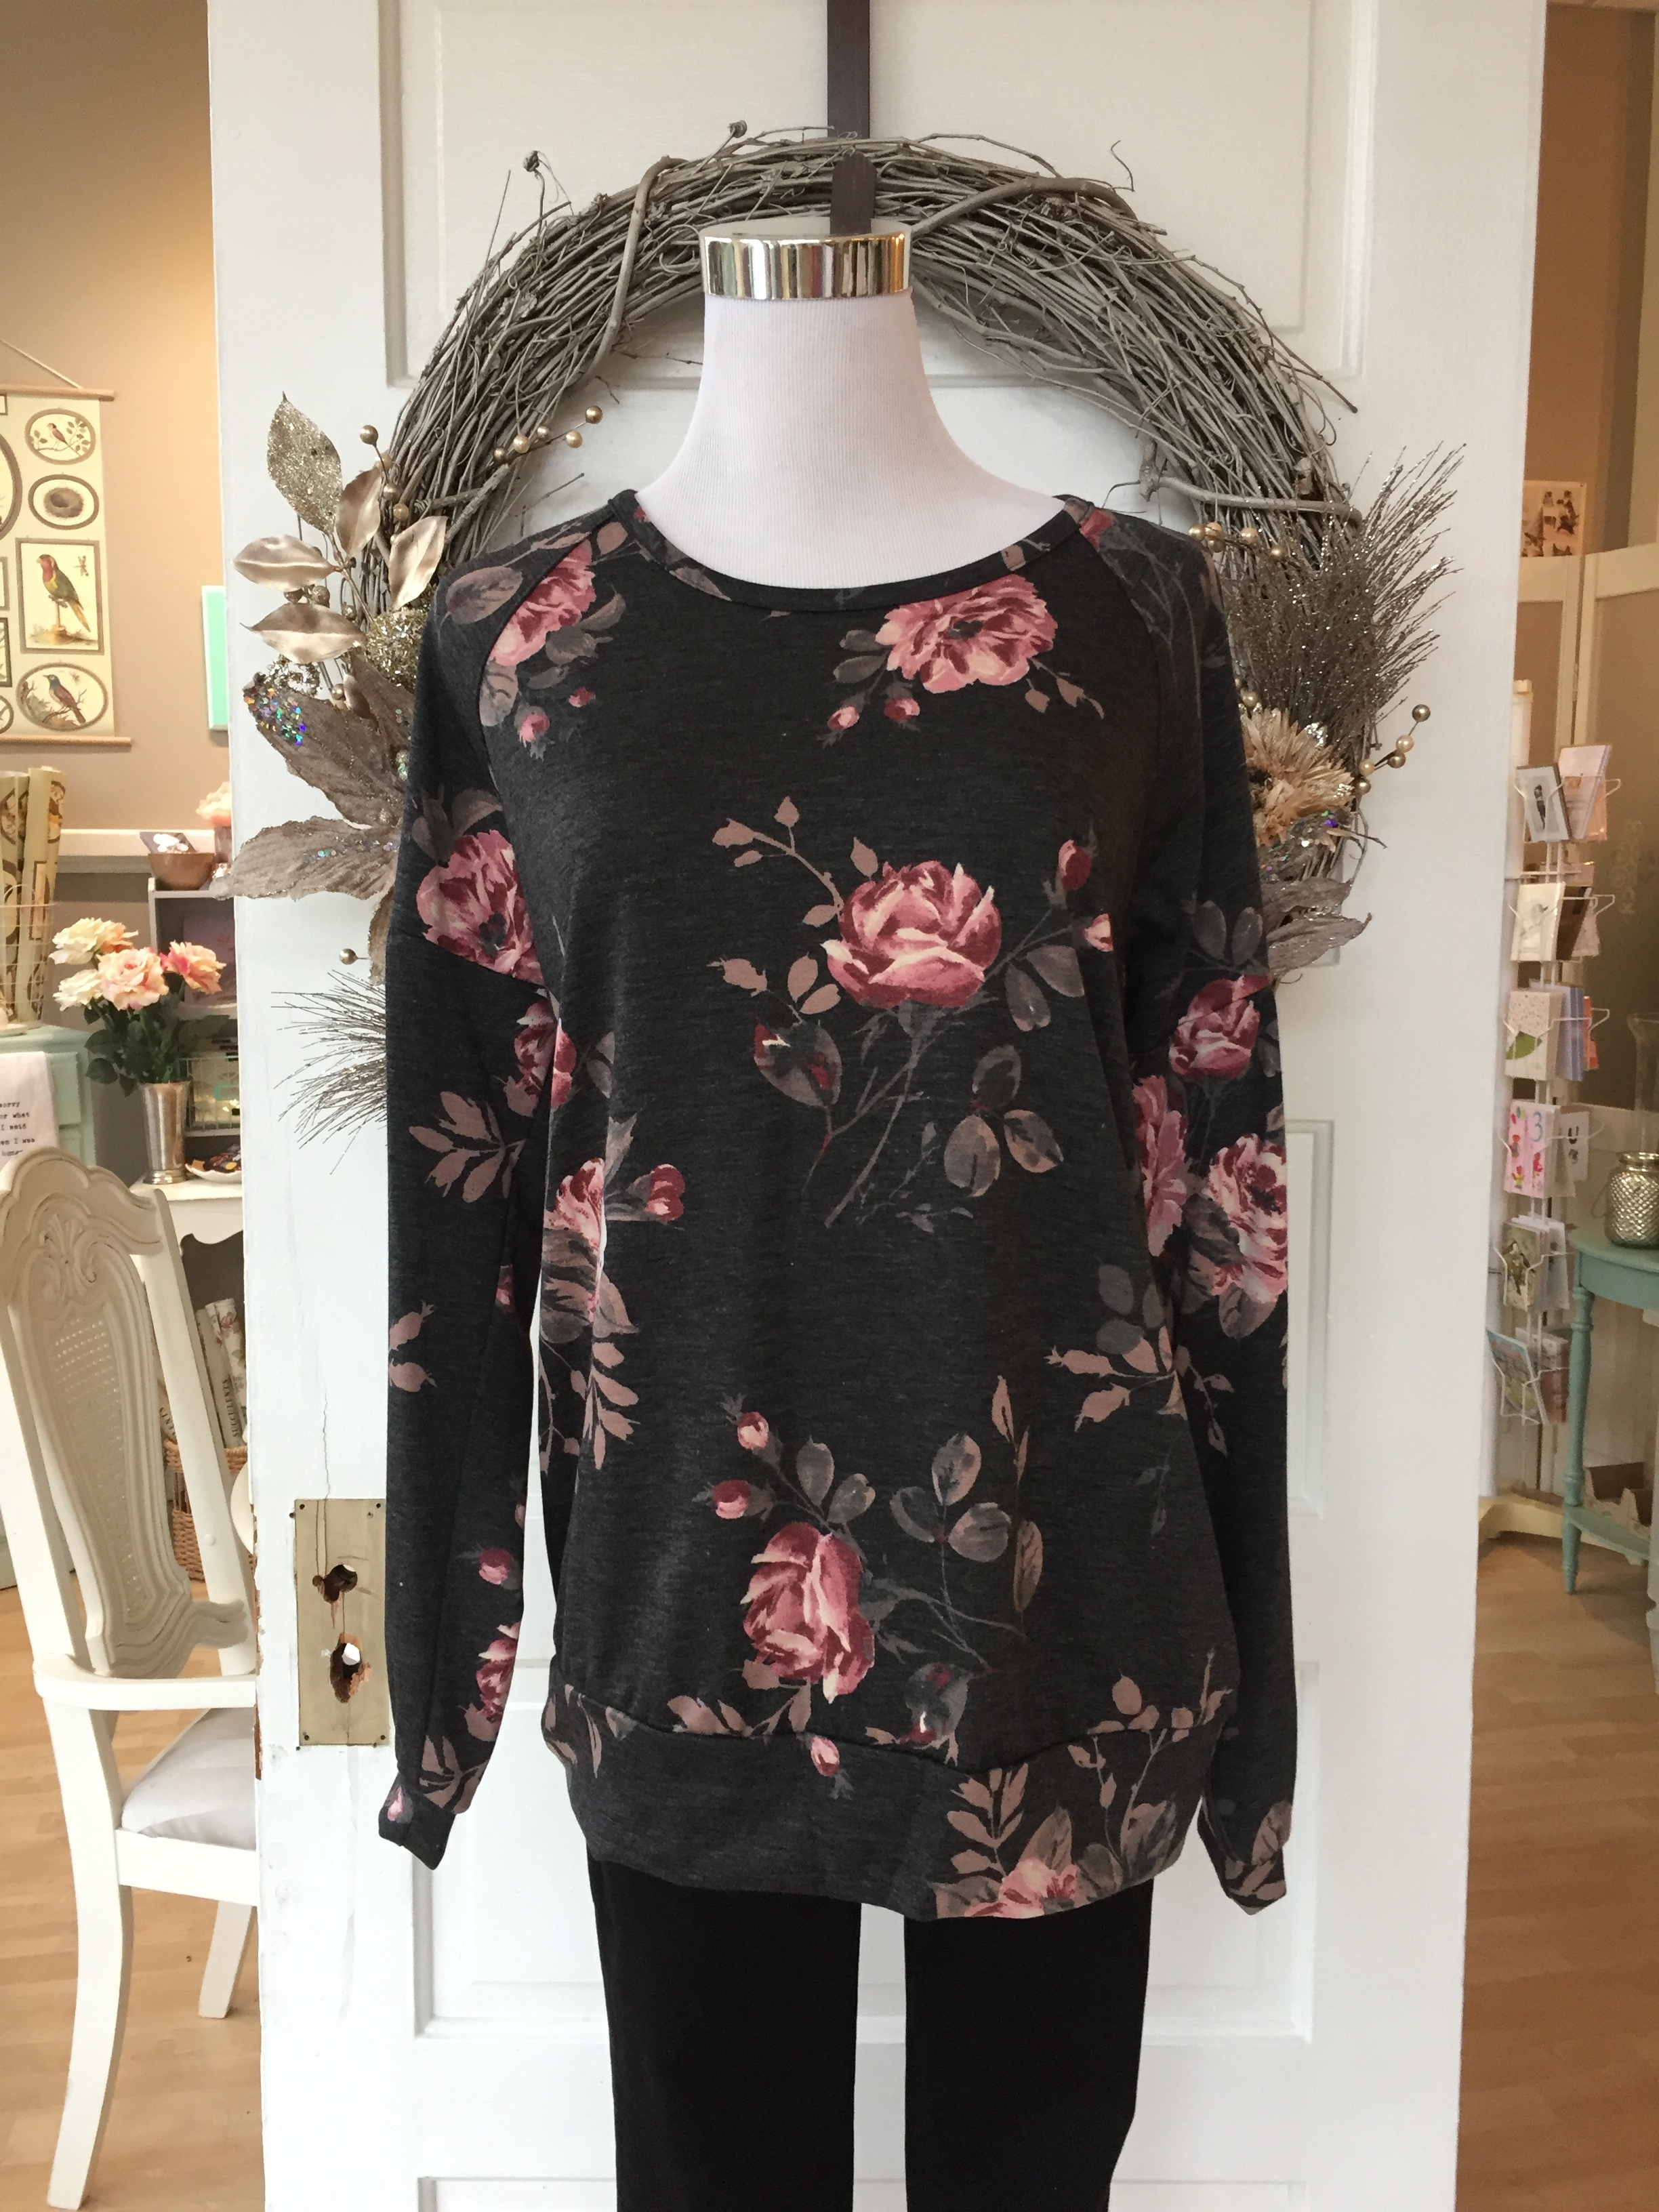 Charcoal Rose Top $35